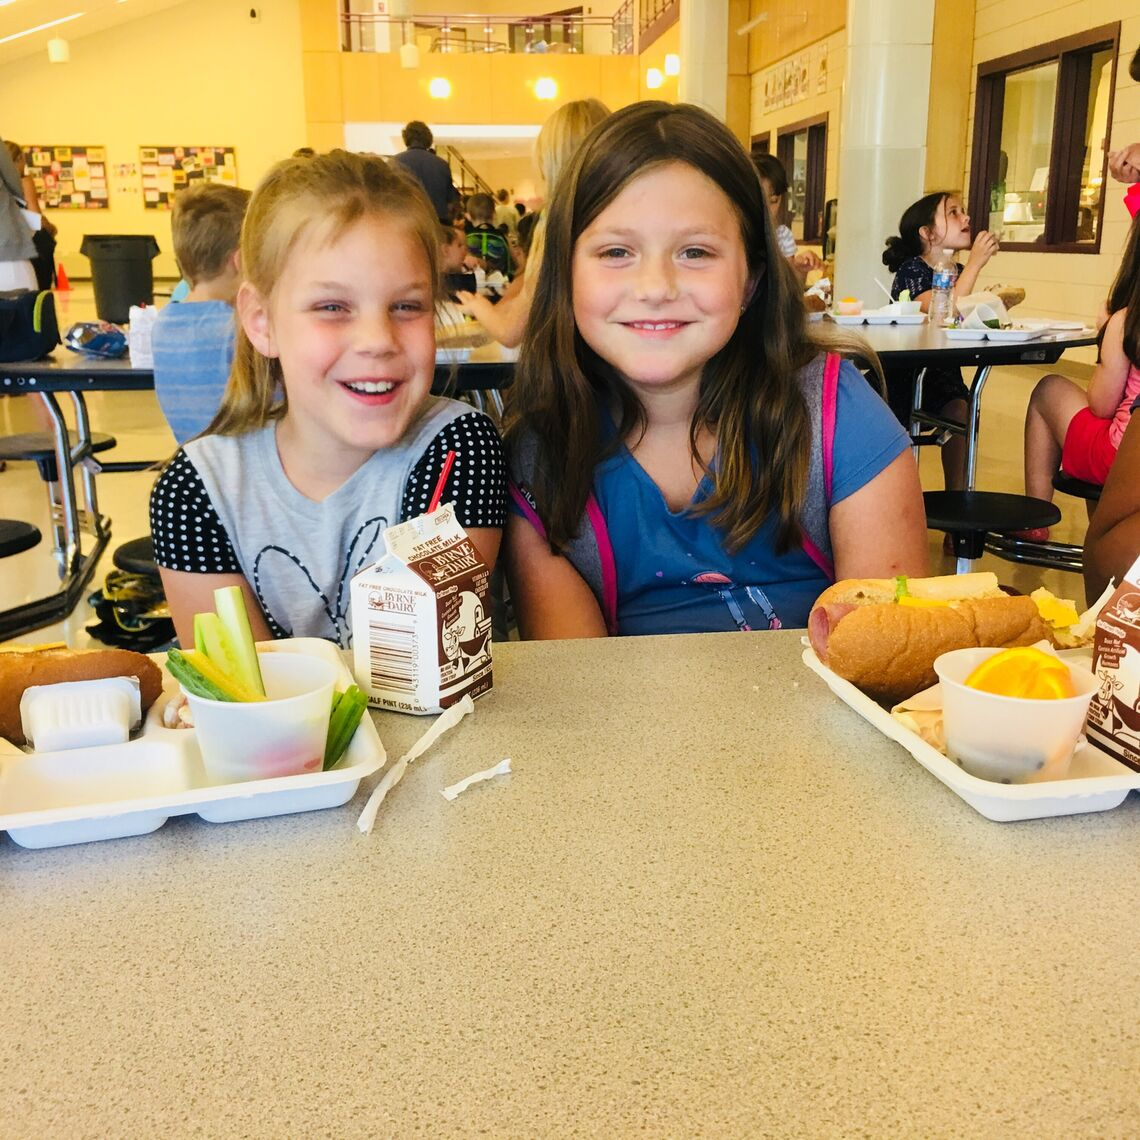 Two girls at a cafeteria table with their school lunch trays smiling